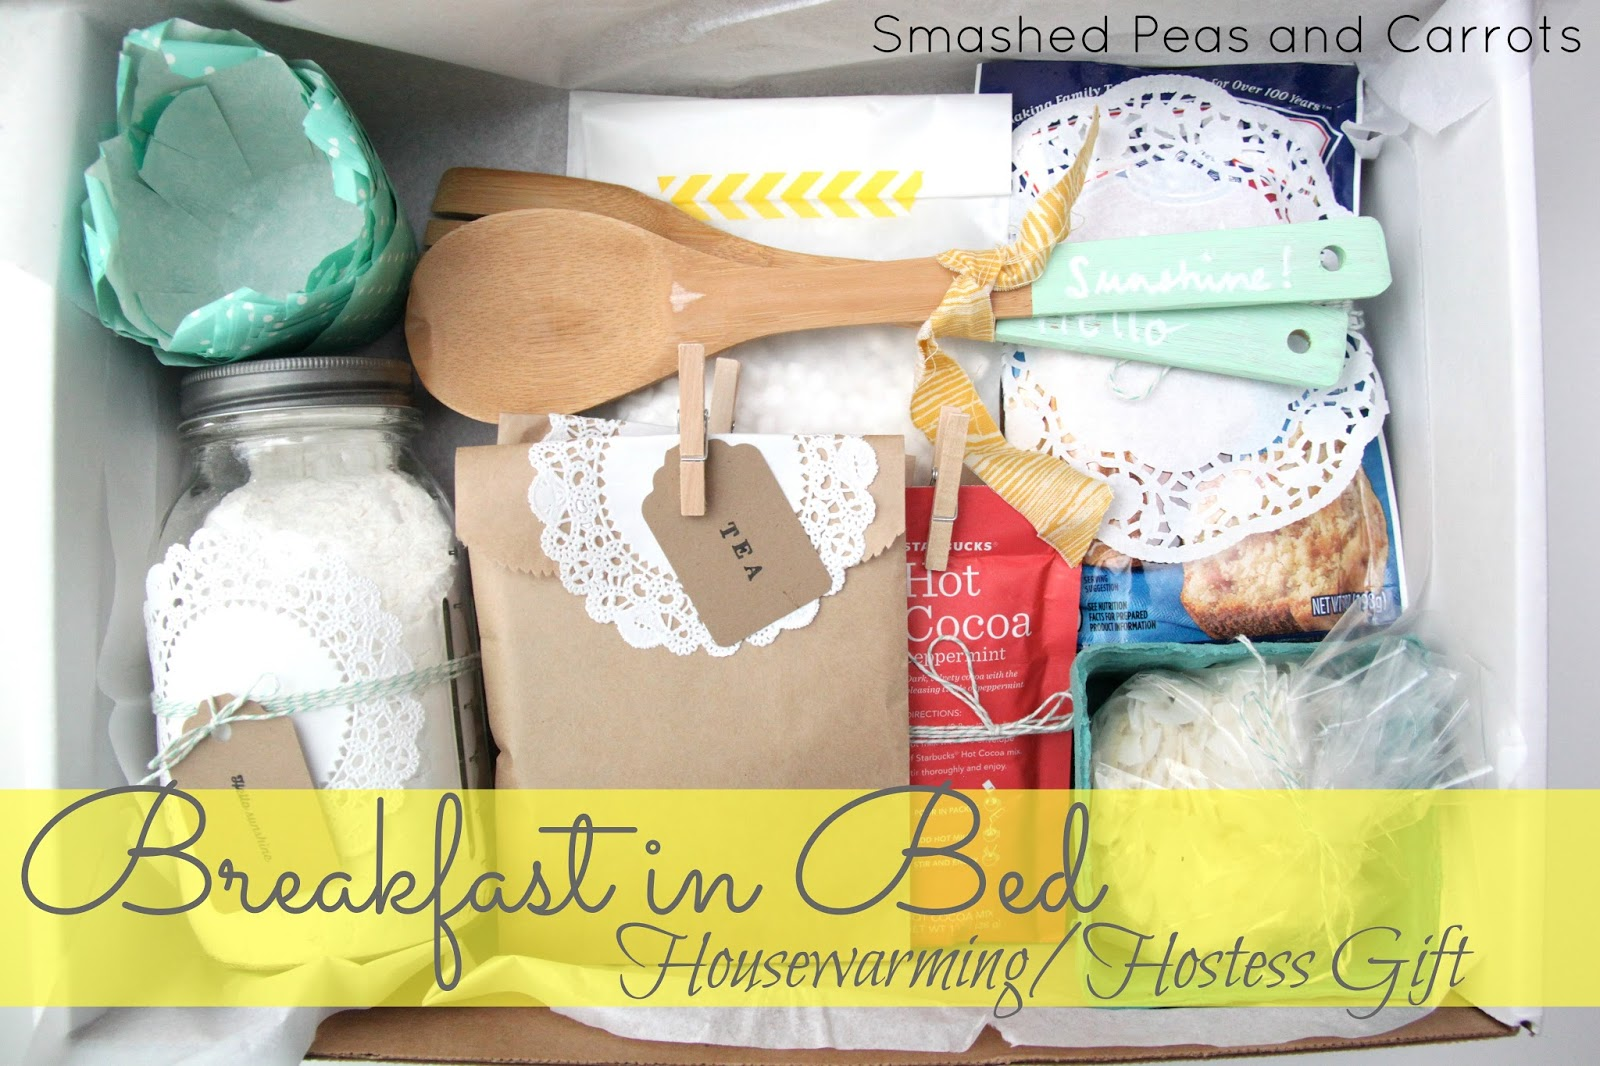 Breakfast in bed housewarming hostess gift idea smashed Hostess gift